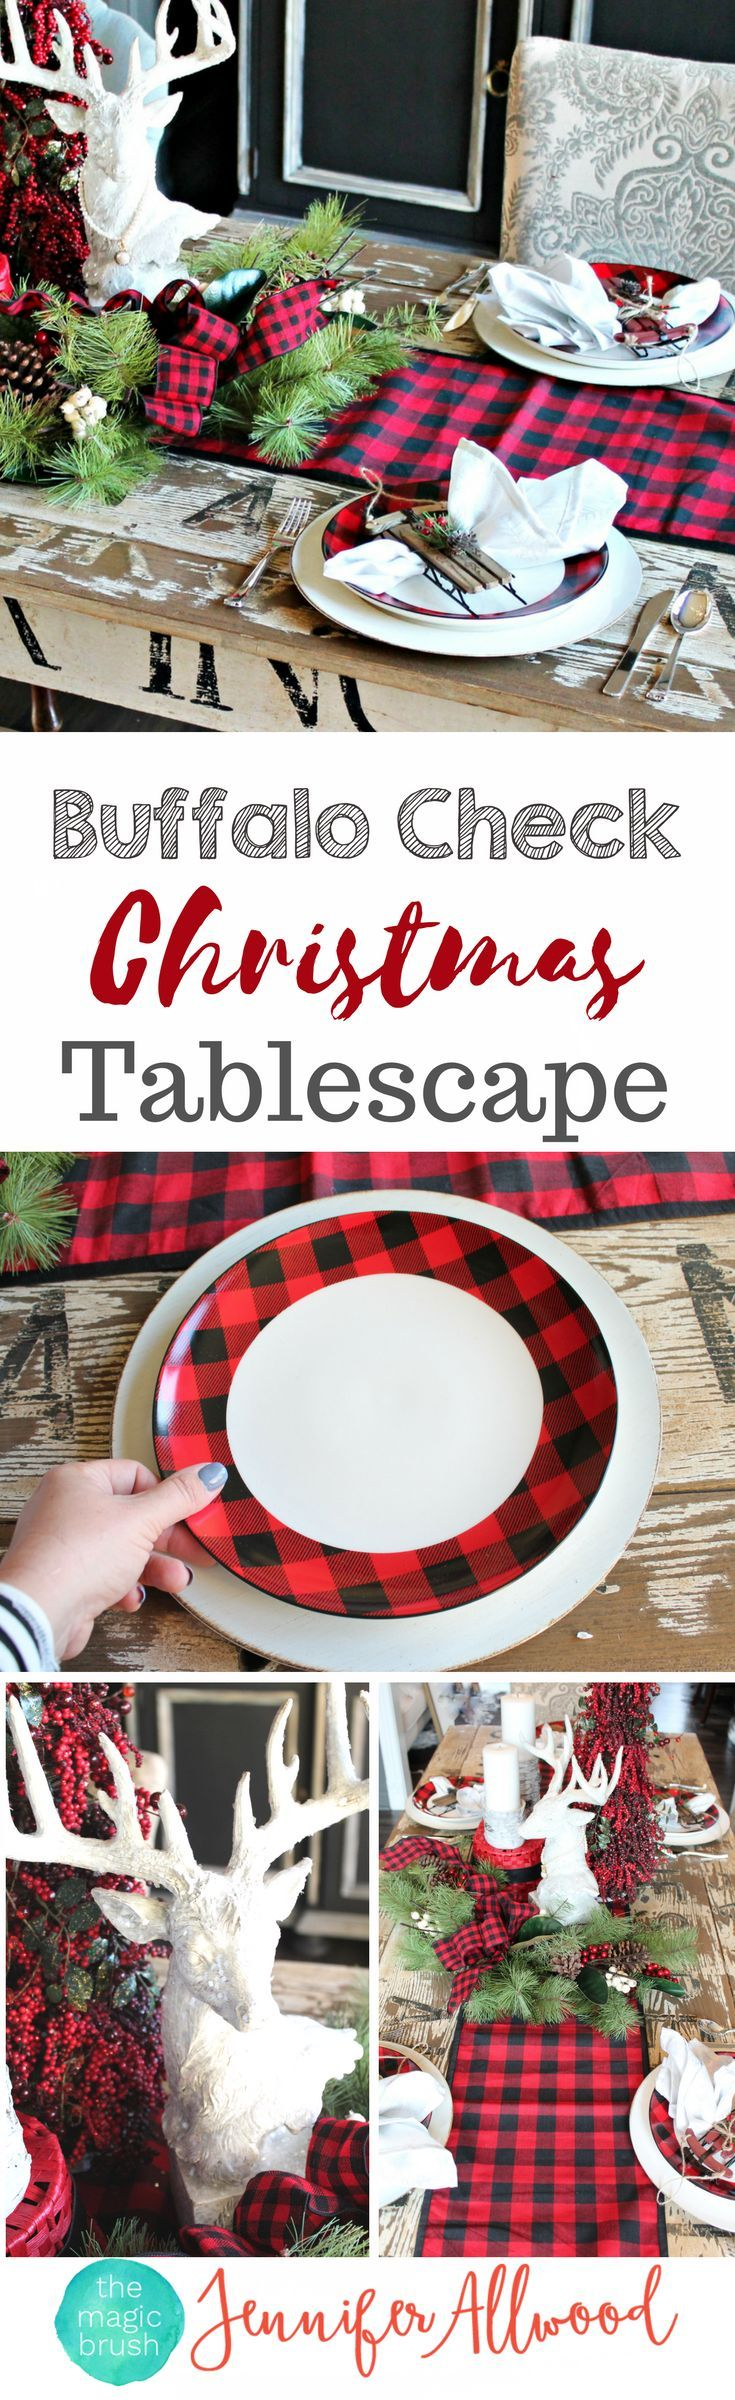 Buffalo Check Christmas Decorating By Http Themagicbrushinc Com This Beautiful Plaid Tablescap Buffalo Check Christmas Christmas Tablescapes Cabin Christmas